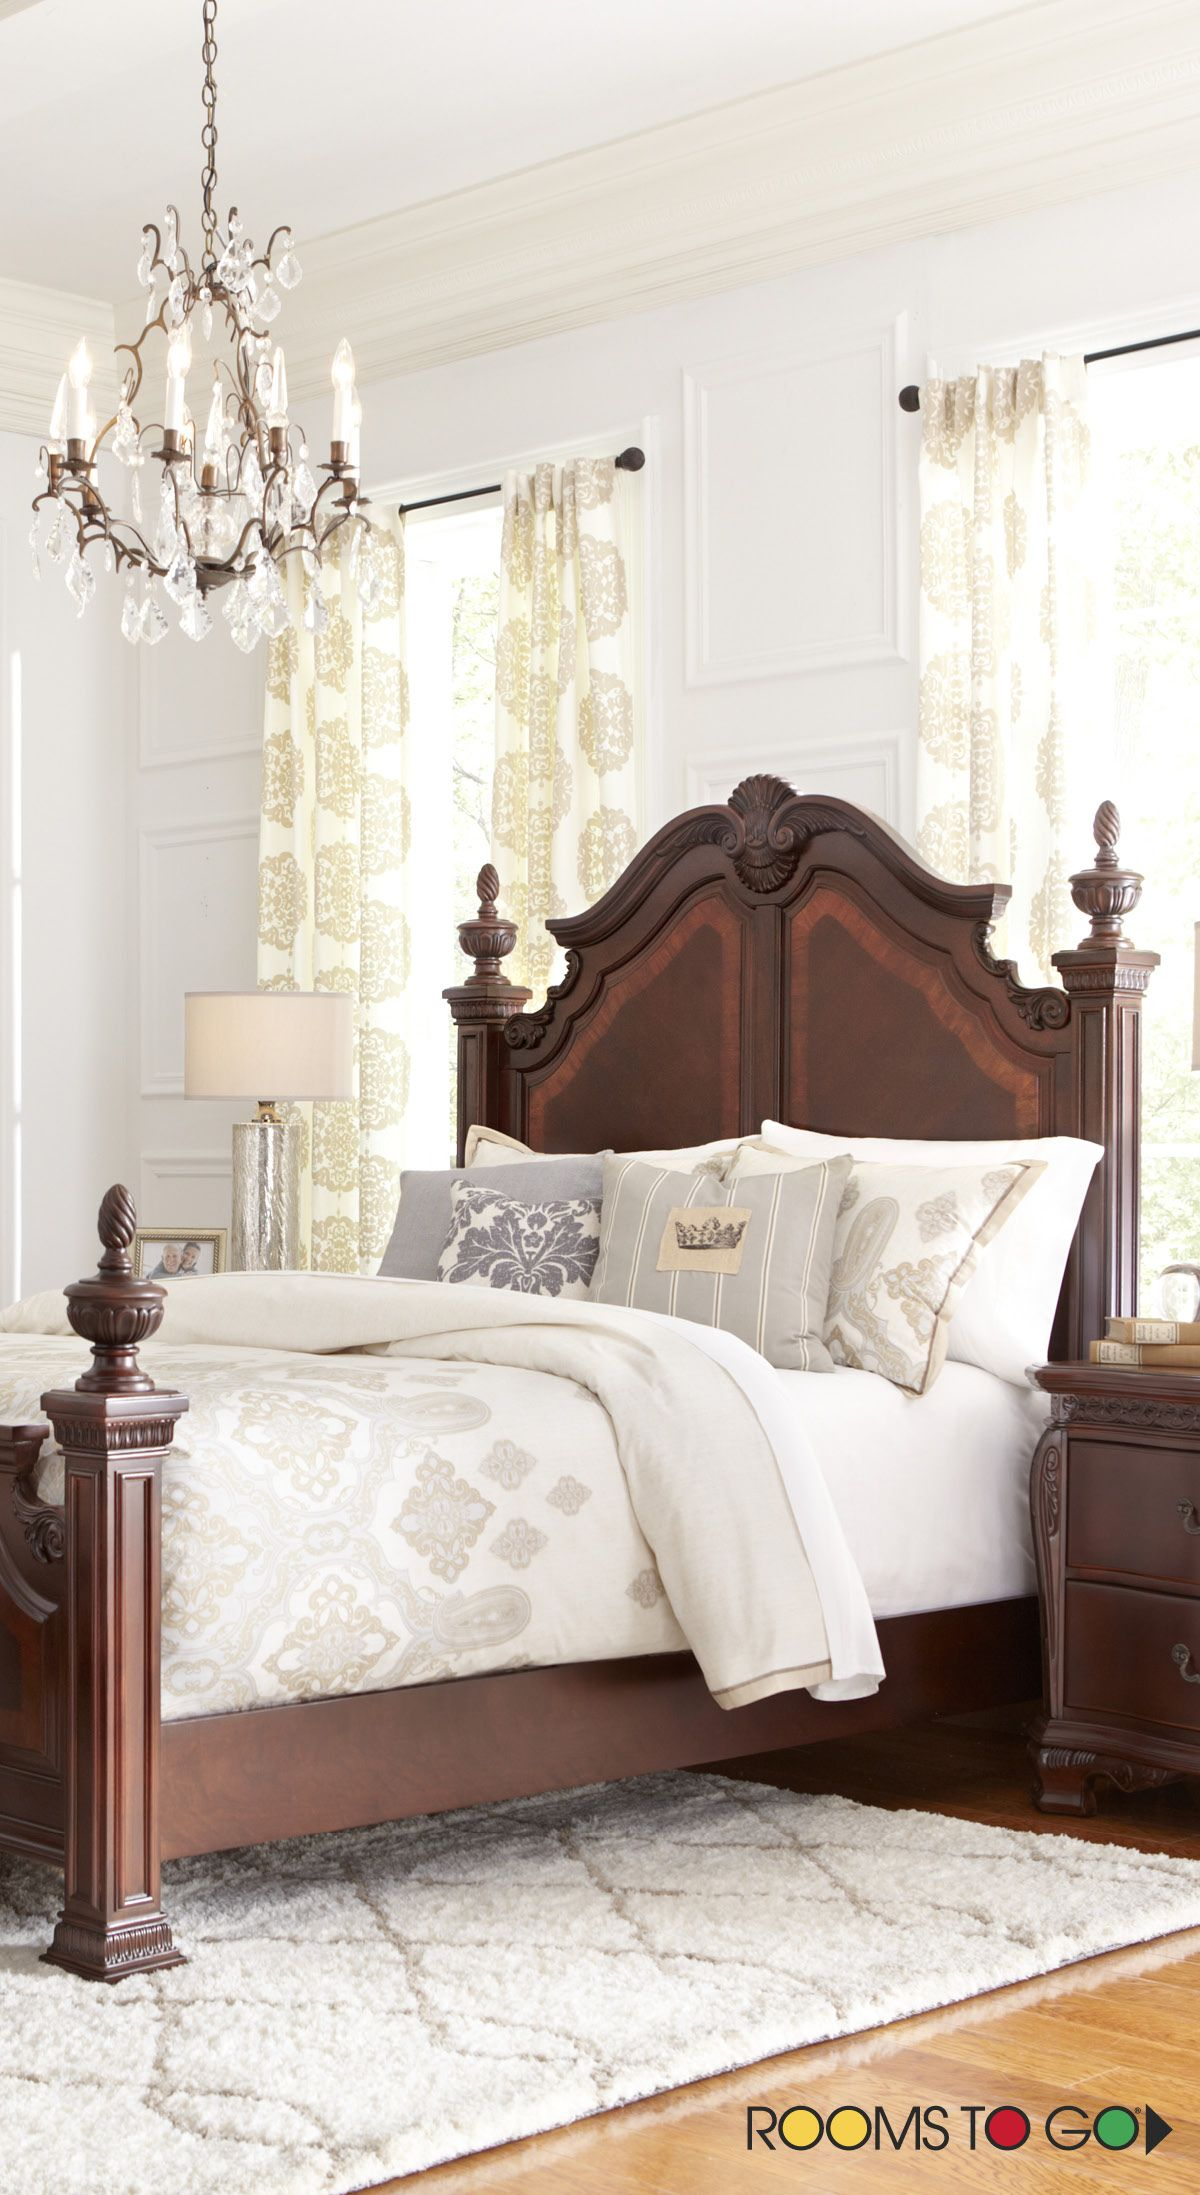 Cortinella Cherry 3 Pc Queen Sleigh Bed: You'll Be Surrounded By Elegance When You Retreat Into The